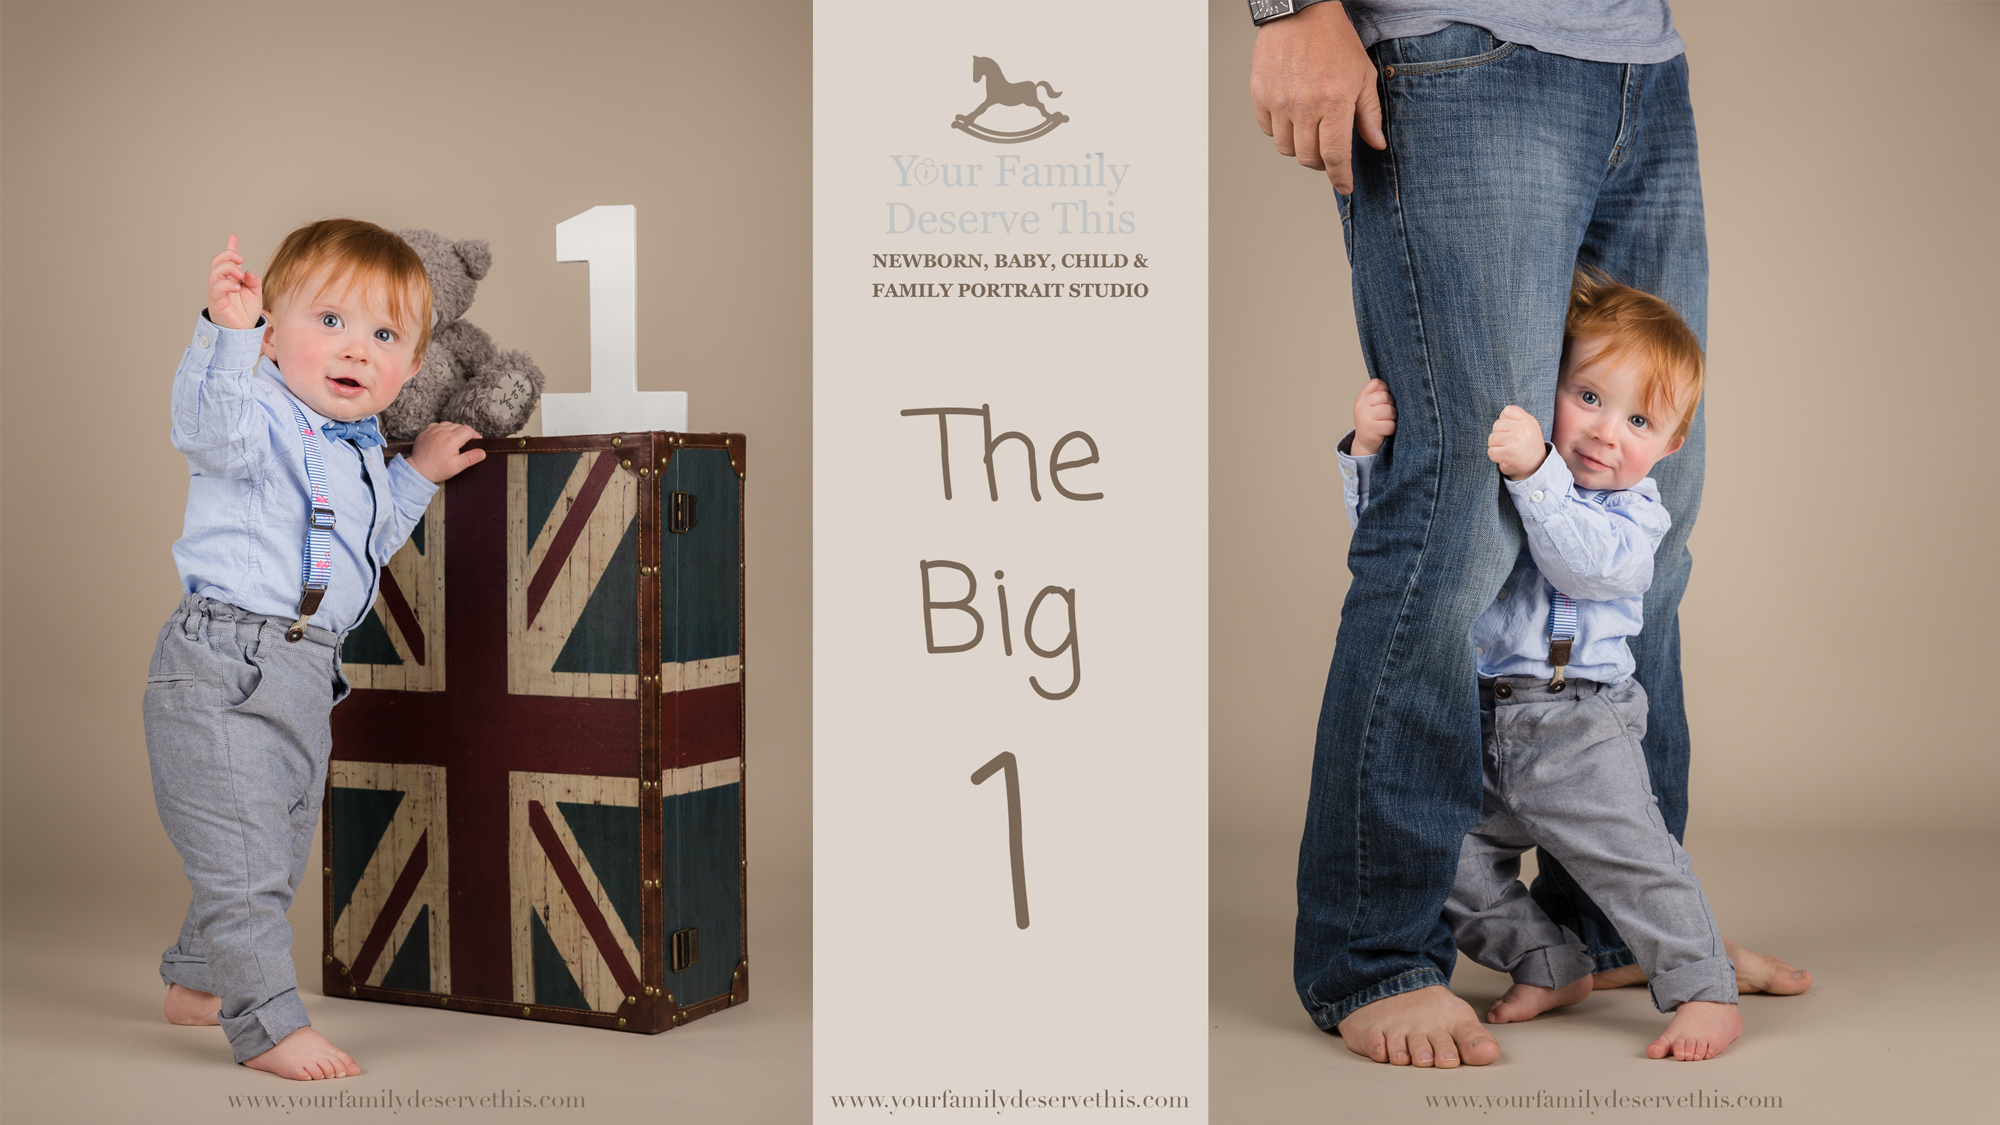 Newborn-Photographer_Basingstoke_Theo_The-Big-1_YourFamilyDeserveThis_2000x1125.jpg